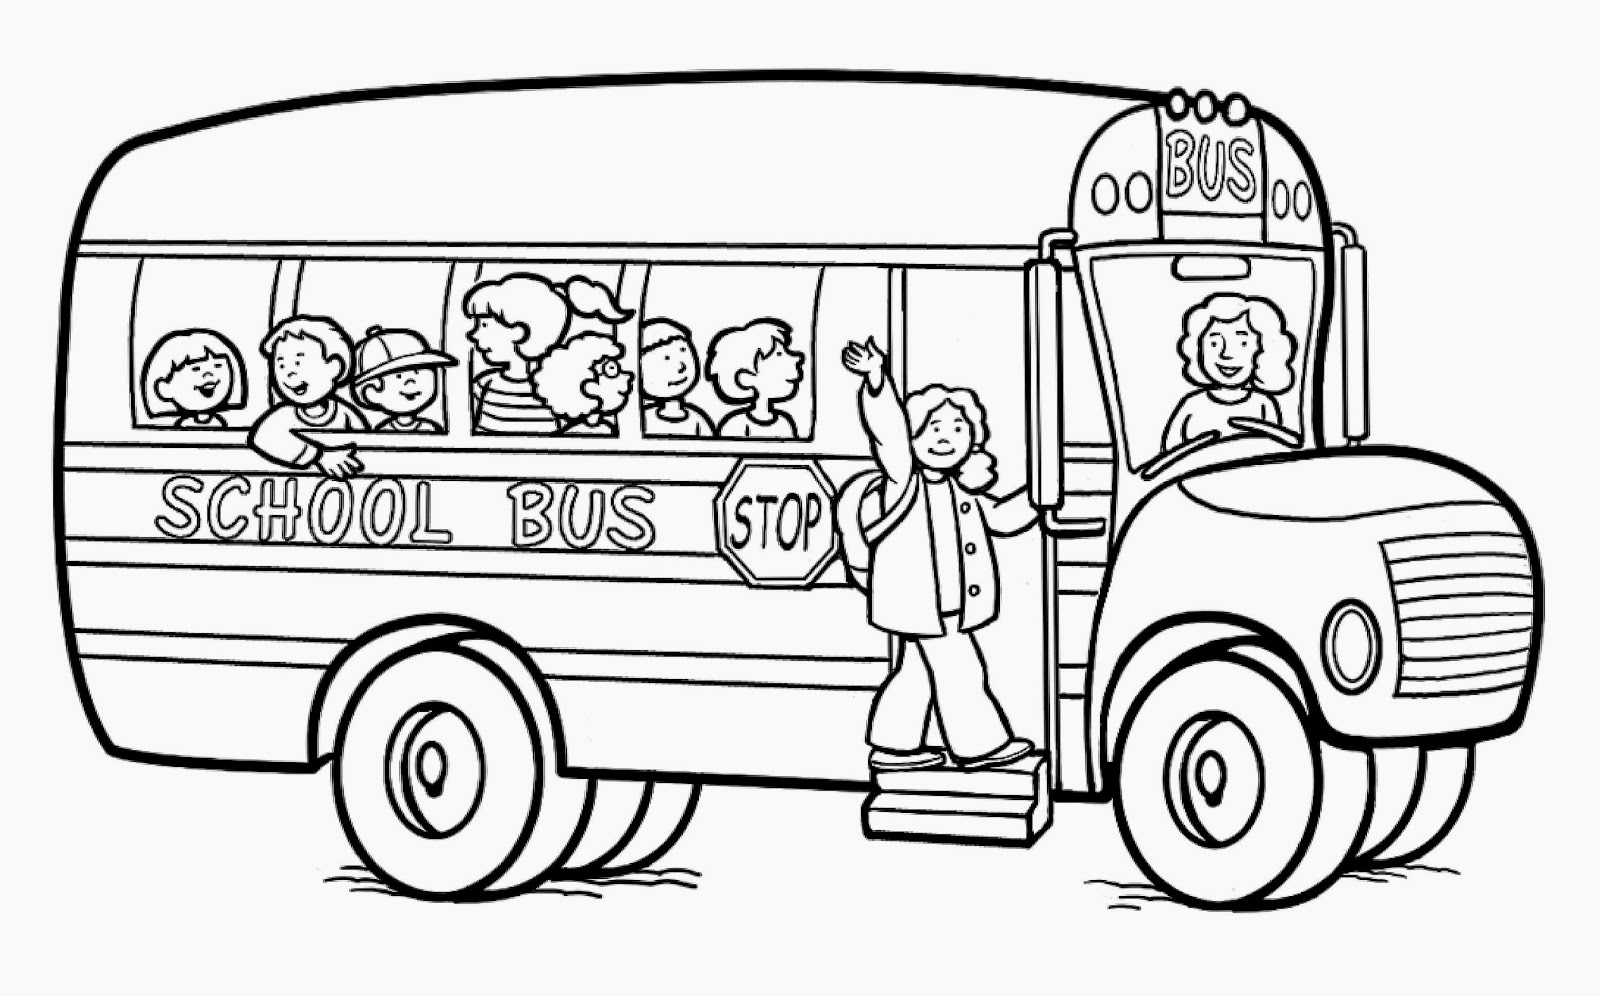 School Bus Coloring Sheet Free Coloring Sheet Coloring Pages For Elementary School